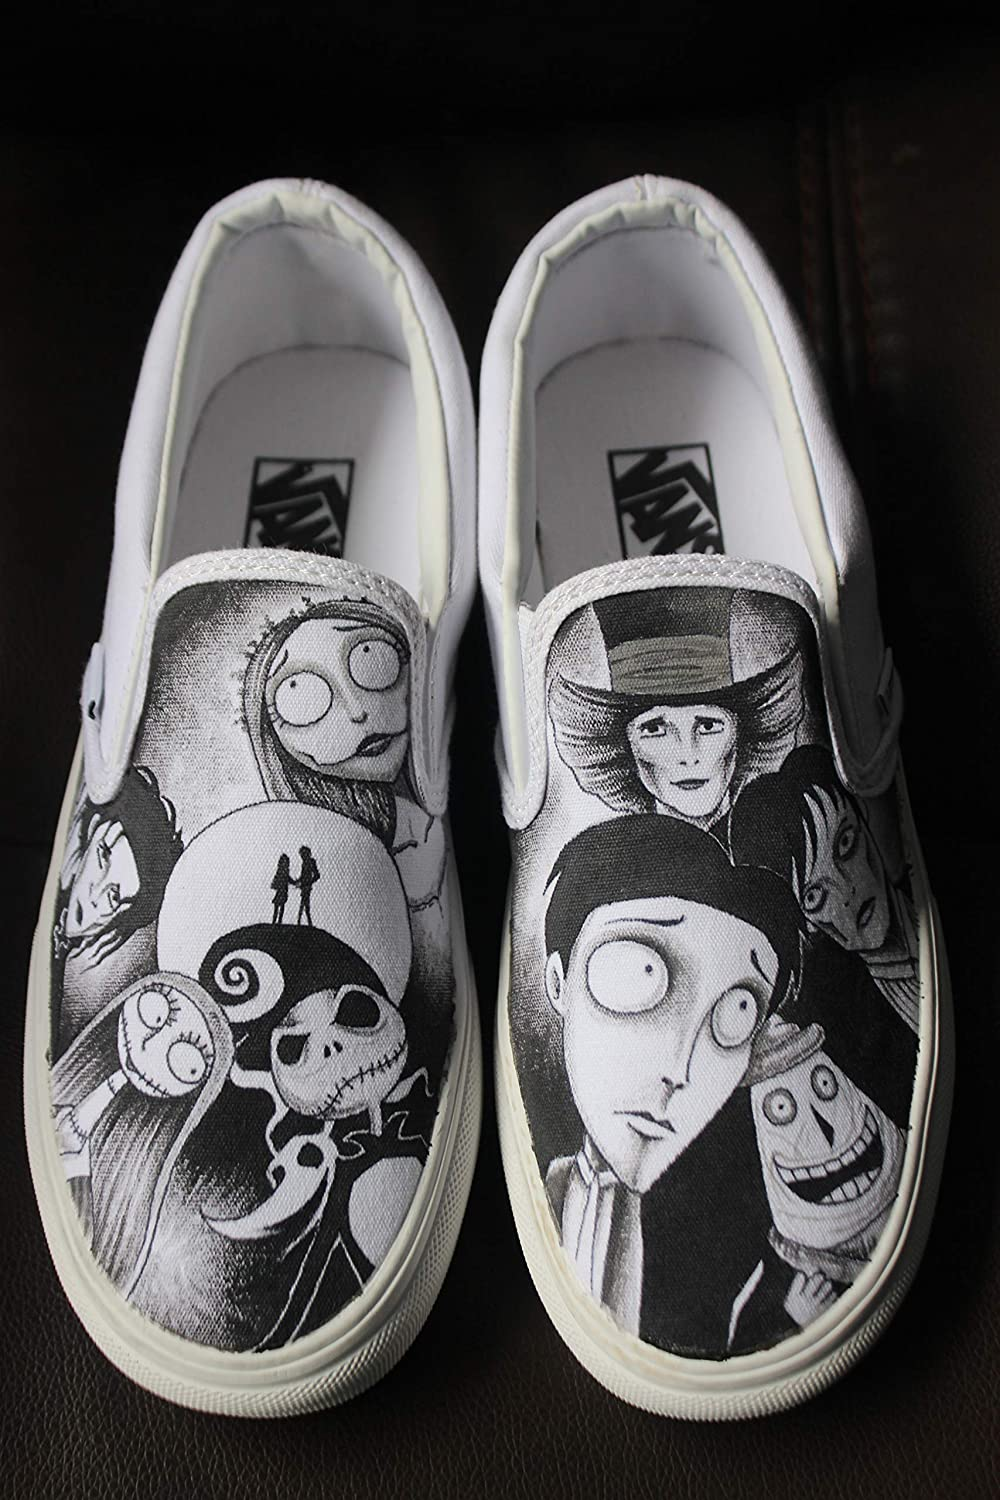 910d29ee515ba8 Hand Painted Shoes Custom Vans Tim Burton Johnny Depp Edward Scissorhands  Corpse Bride Nightmare before christmas Zapatos Fashion Shoes for Kids Unisex  ...